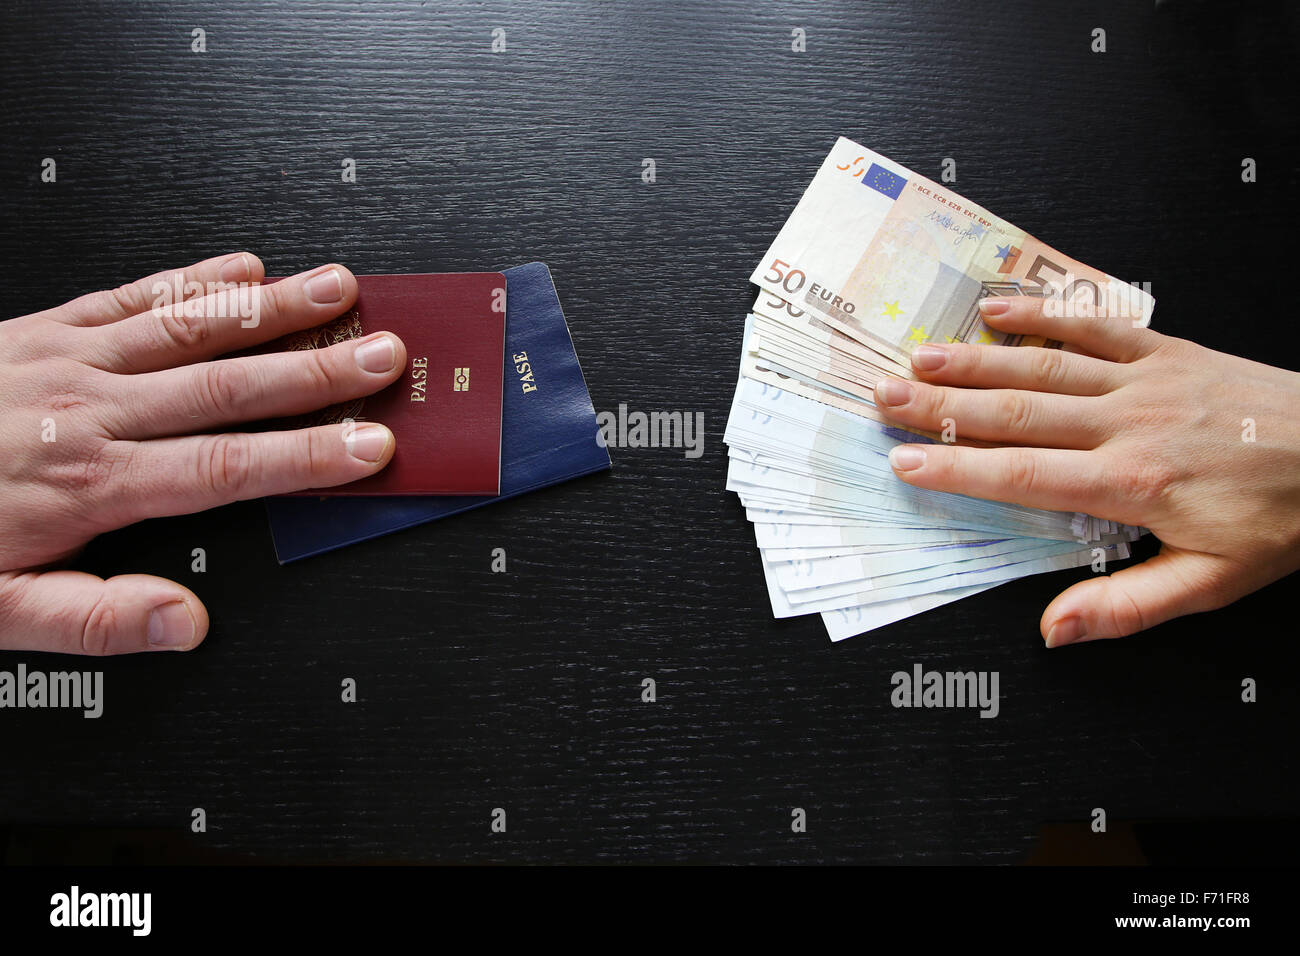 buying illegal foreign passport hands exchanging money and documents buyer seller - Stock Image